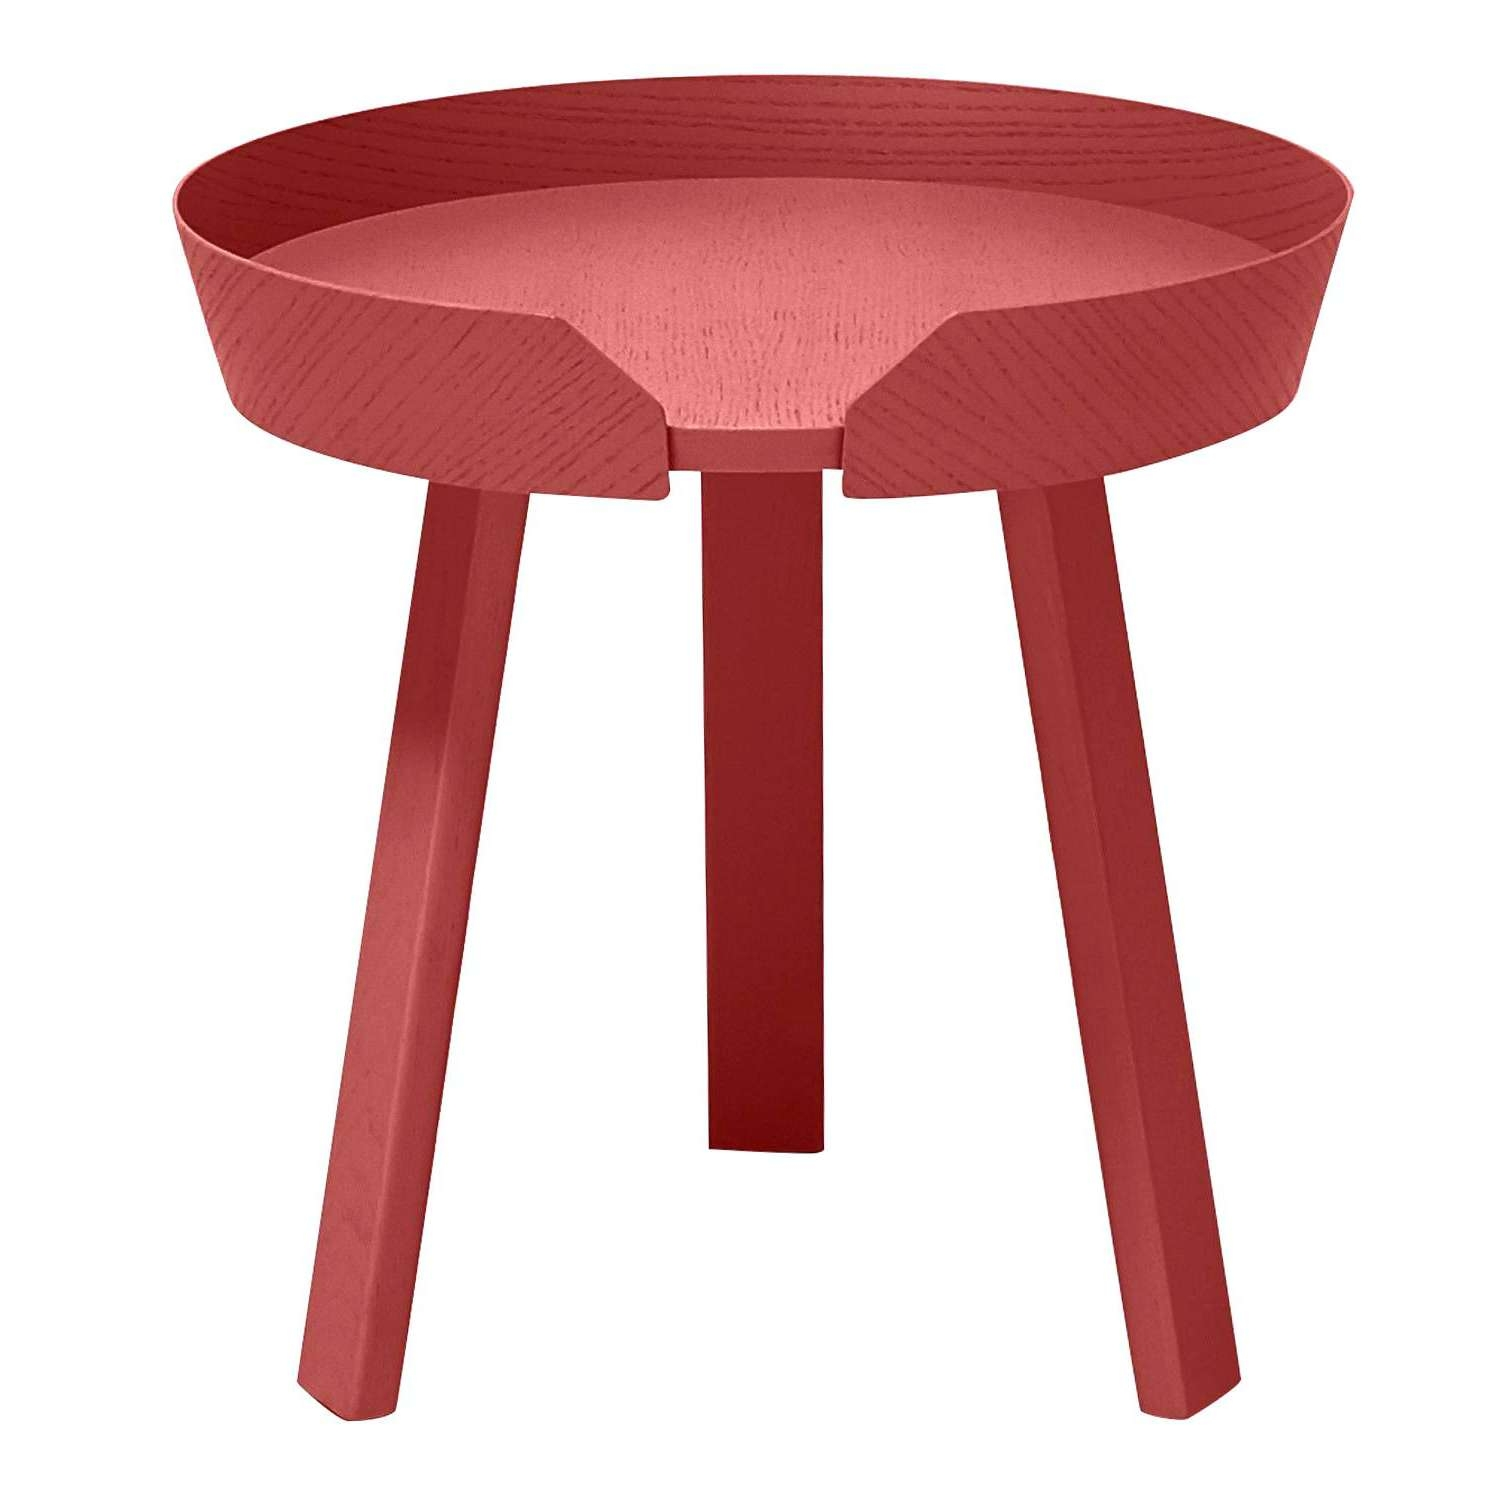 Most Recently Released Red Gloss Coffee Tables With Regard To Articles With Red High Gloss Coffee Table Tag: Red Gloss Coffee (View 7 of 20)